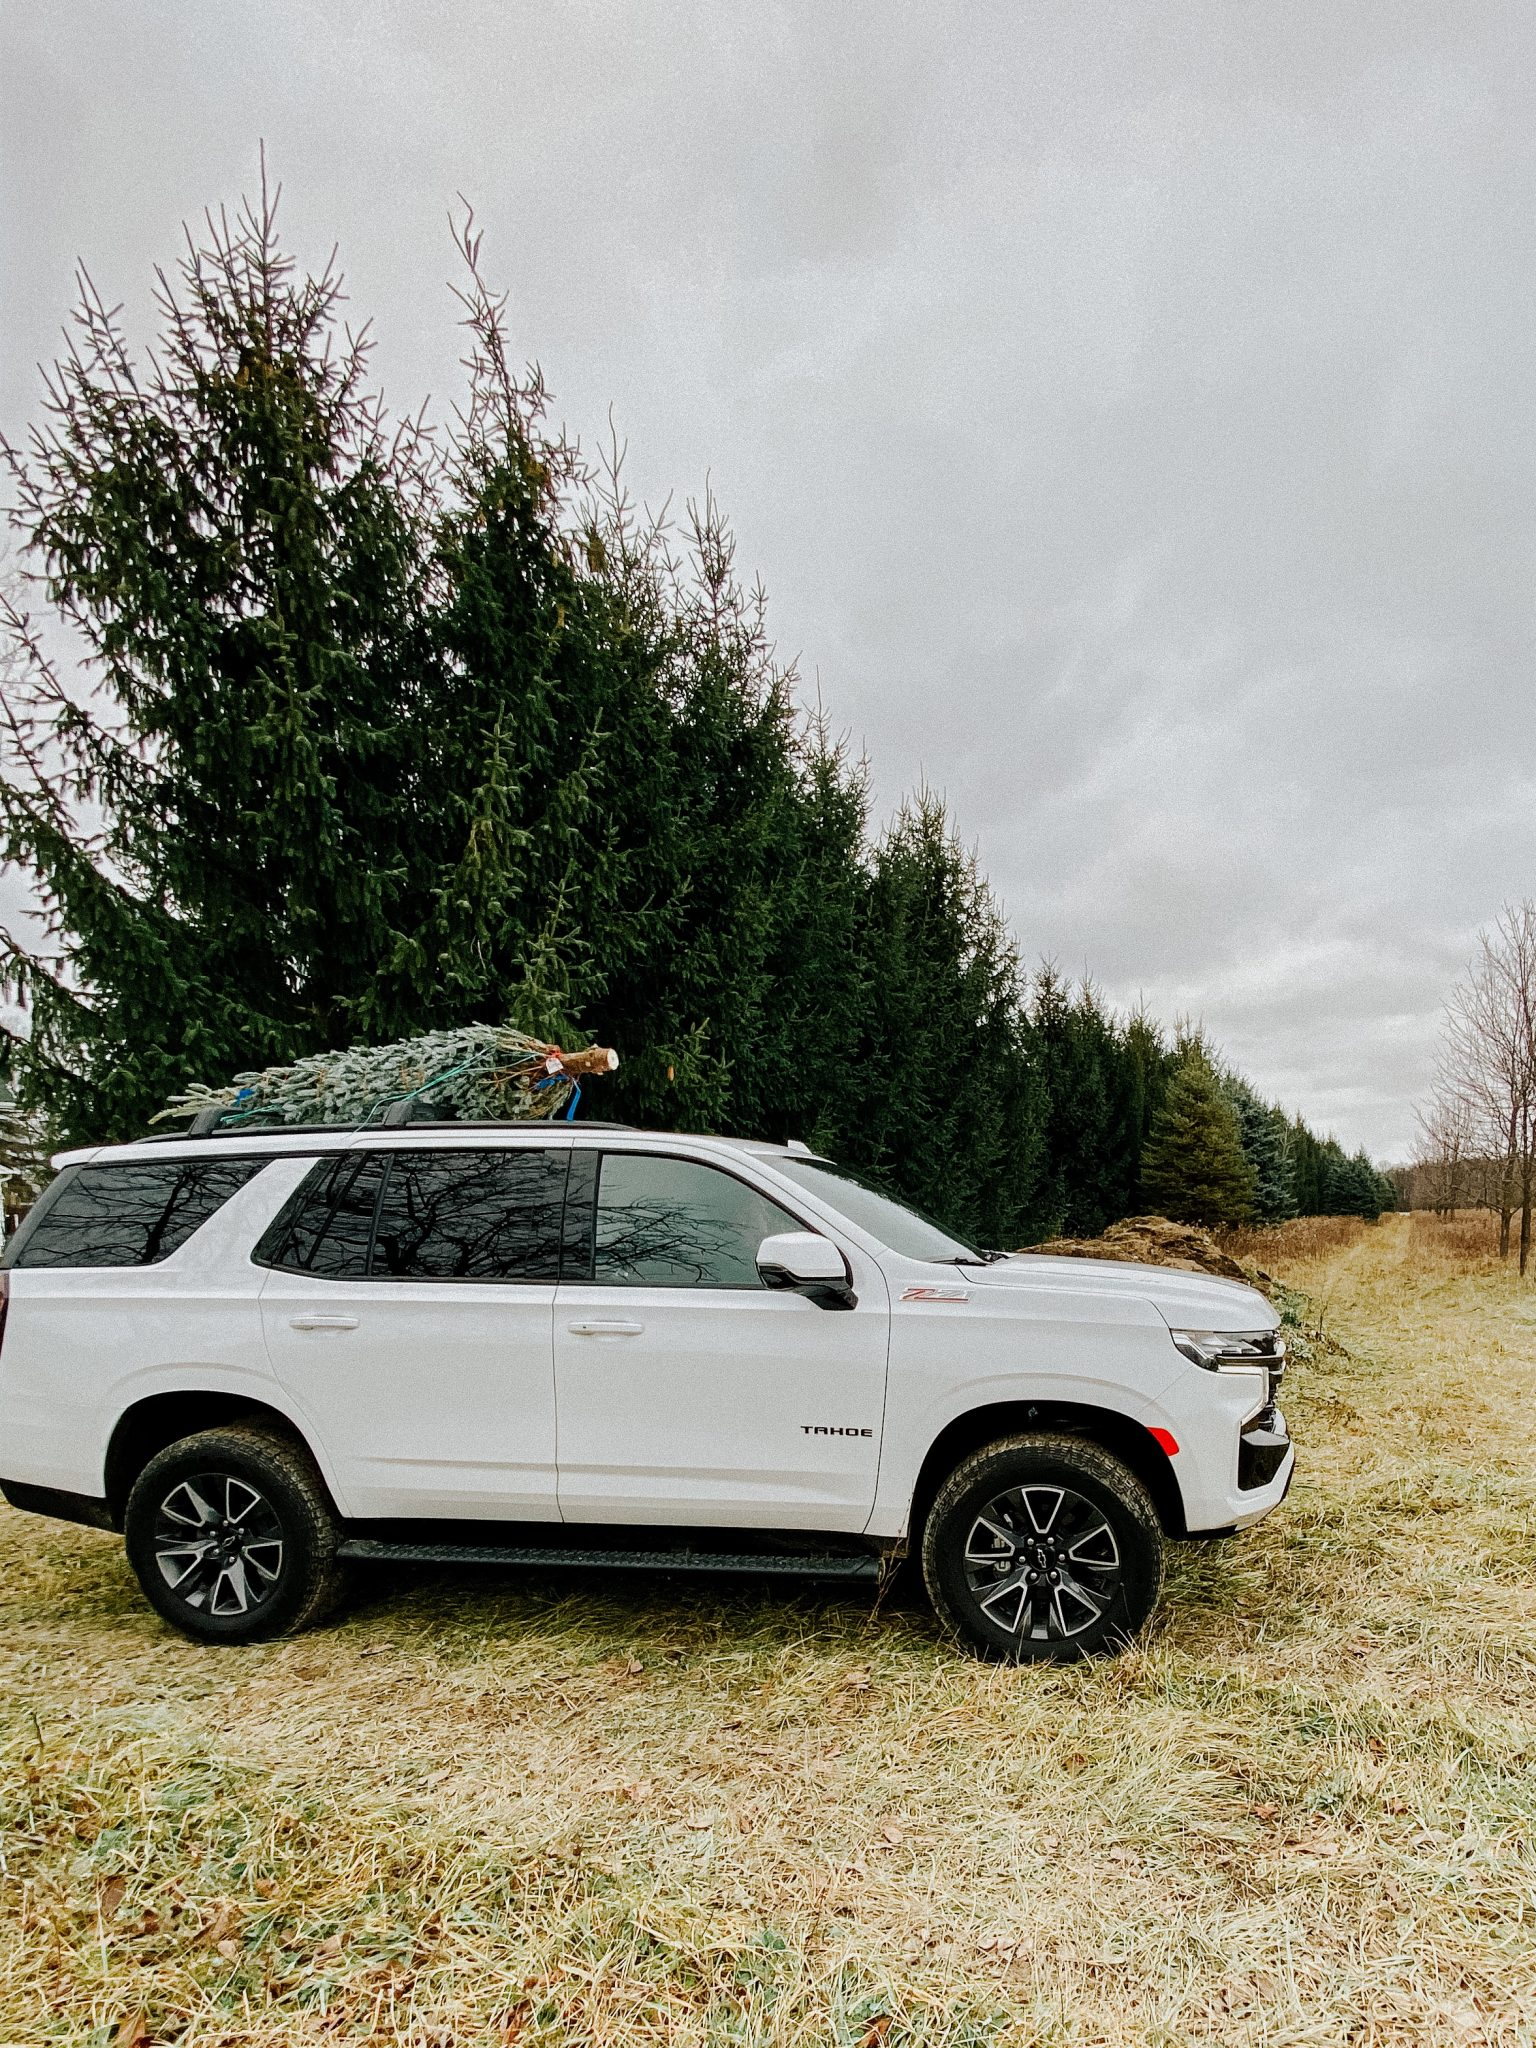 Winter outings with the family | Daily Splendor Life and Style Blog #familychristmas #holidayfestivities #familyadventures #chevytahoe #2020activities #Christmastree #momlife